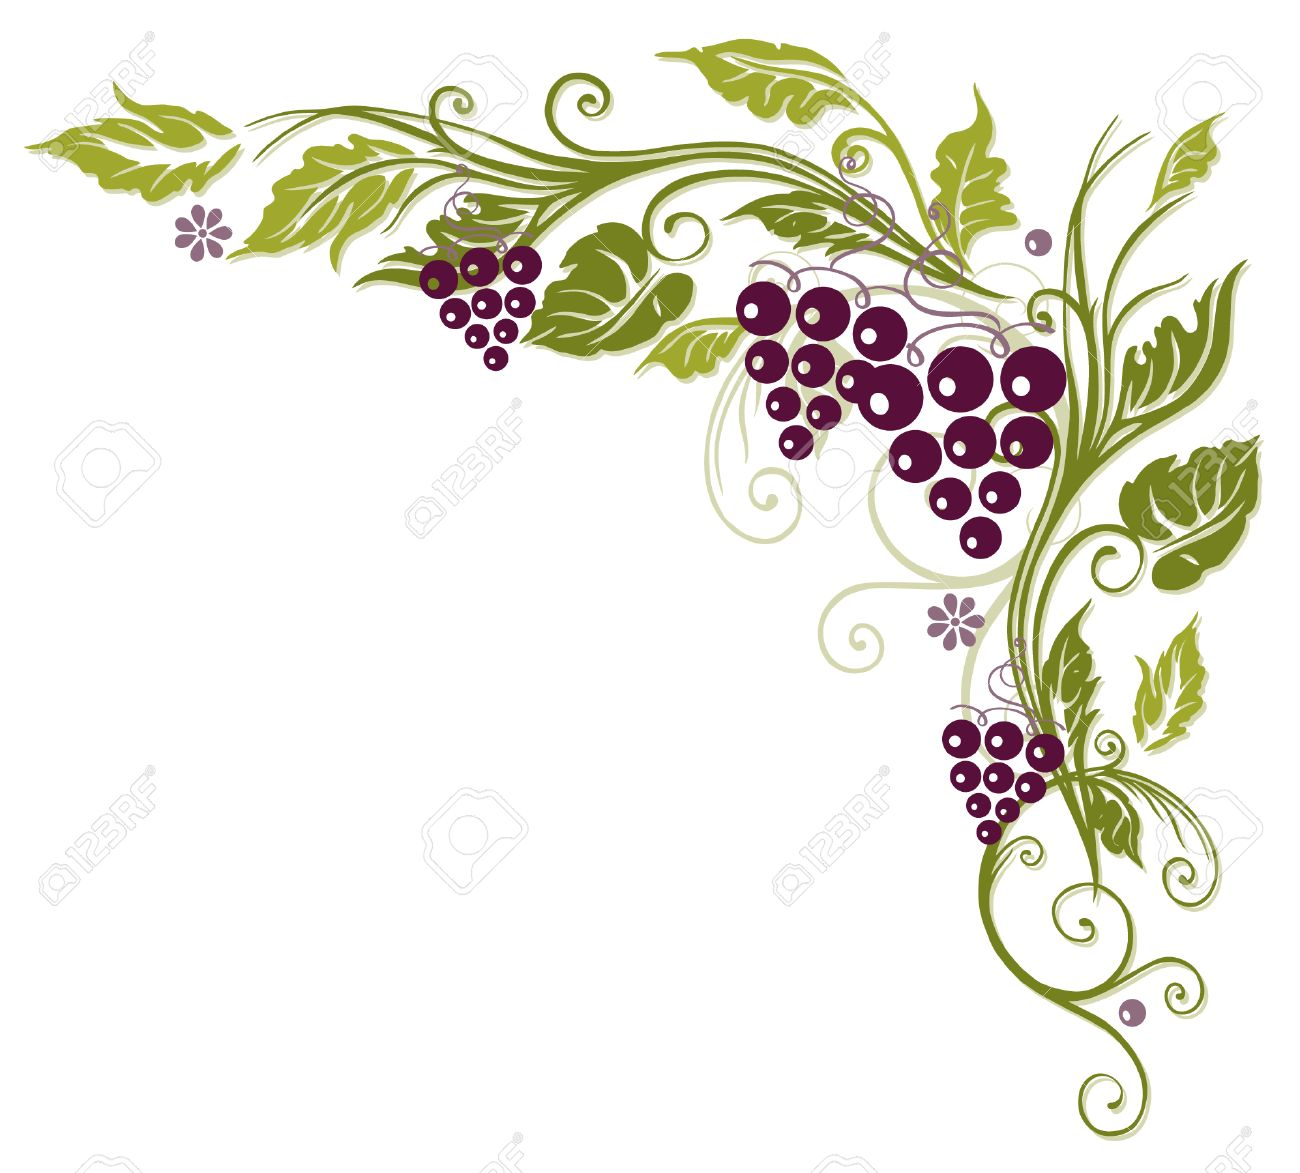 Colorful tendril with grapes and leaves Standard-Bild - 23246988